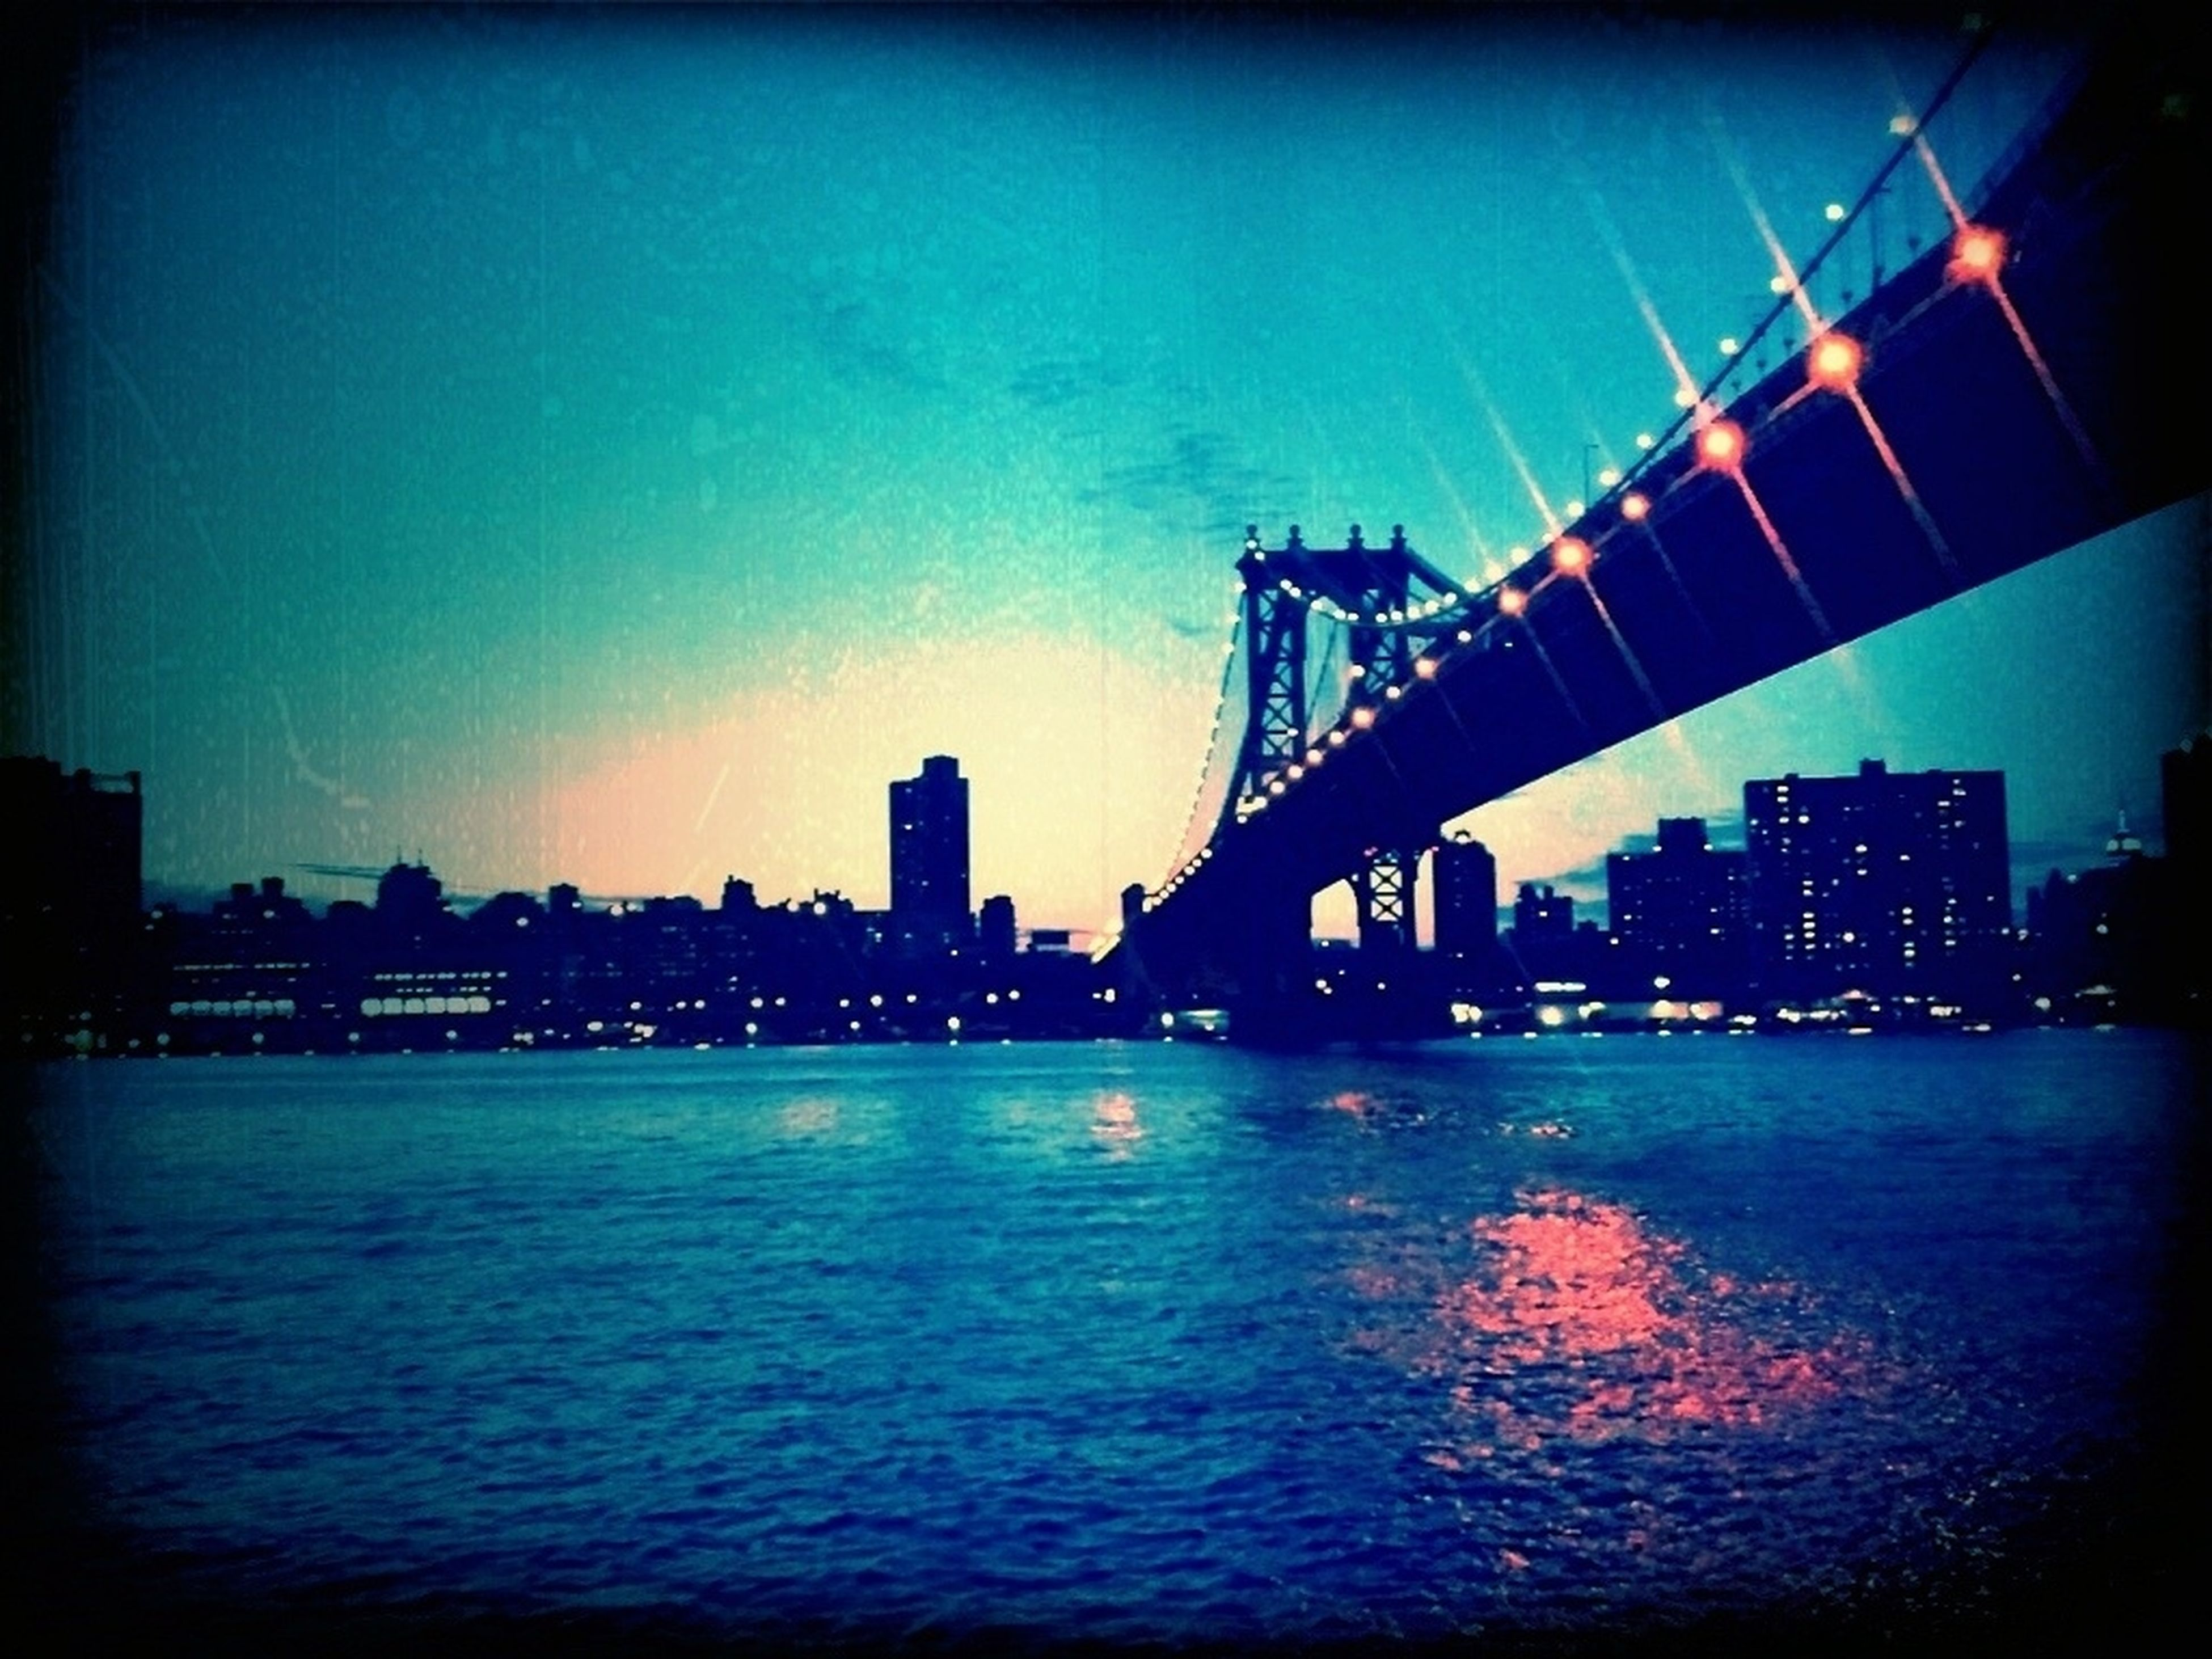 architecture, built structure, water, waterfront, building exterior, city, illuminated, river, transfer print, sunset, blue, connection, clear sky, bridge - man made structure, sky, reflection, auto post production filter, dusk, sea, silhouette